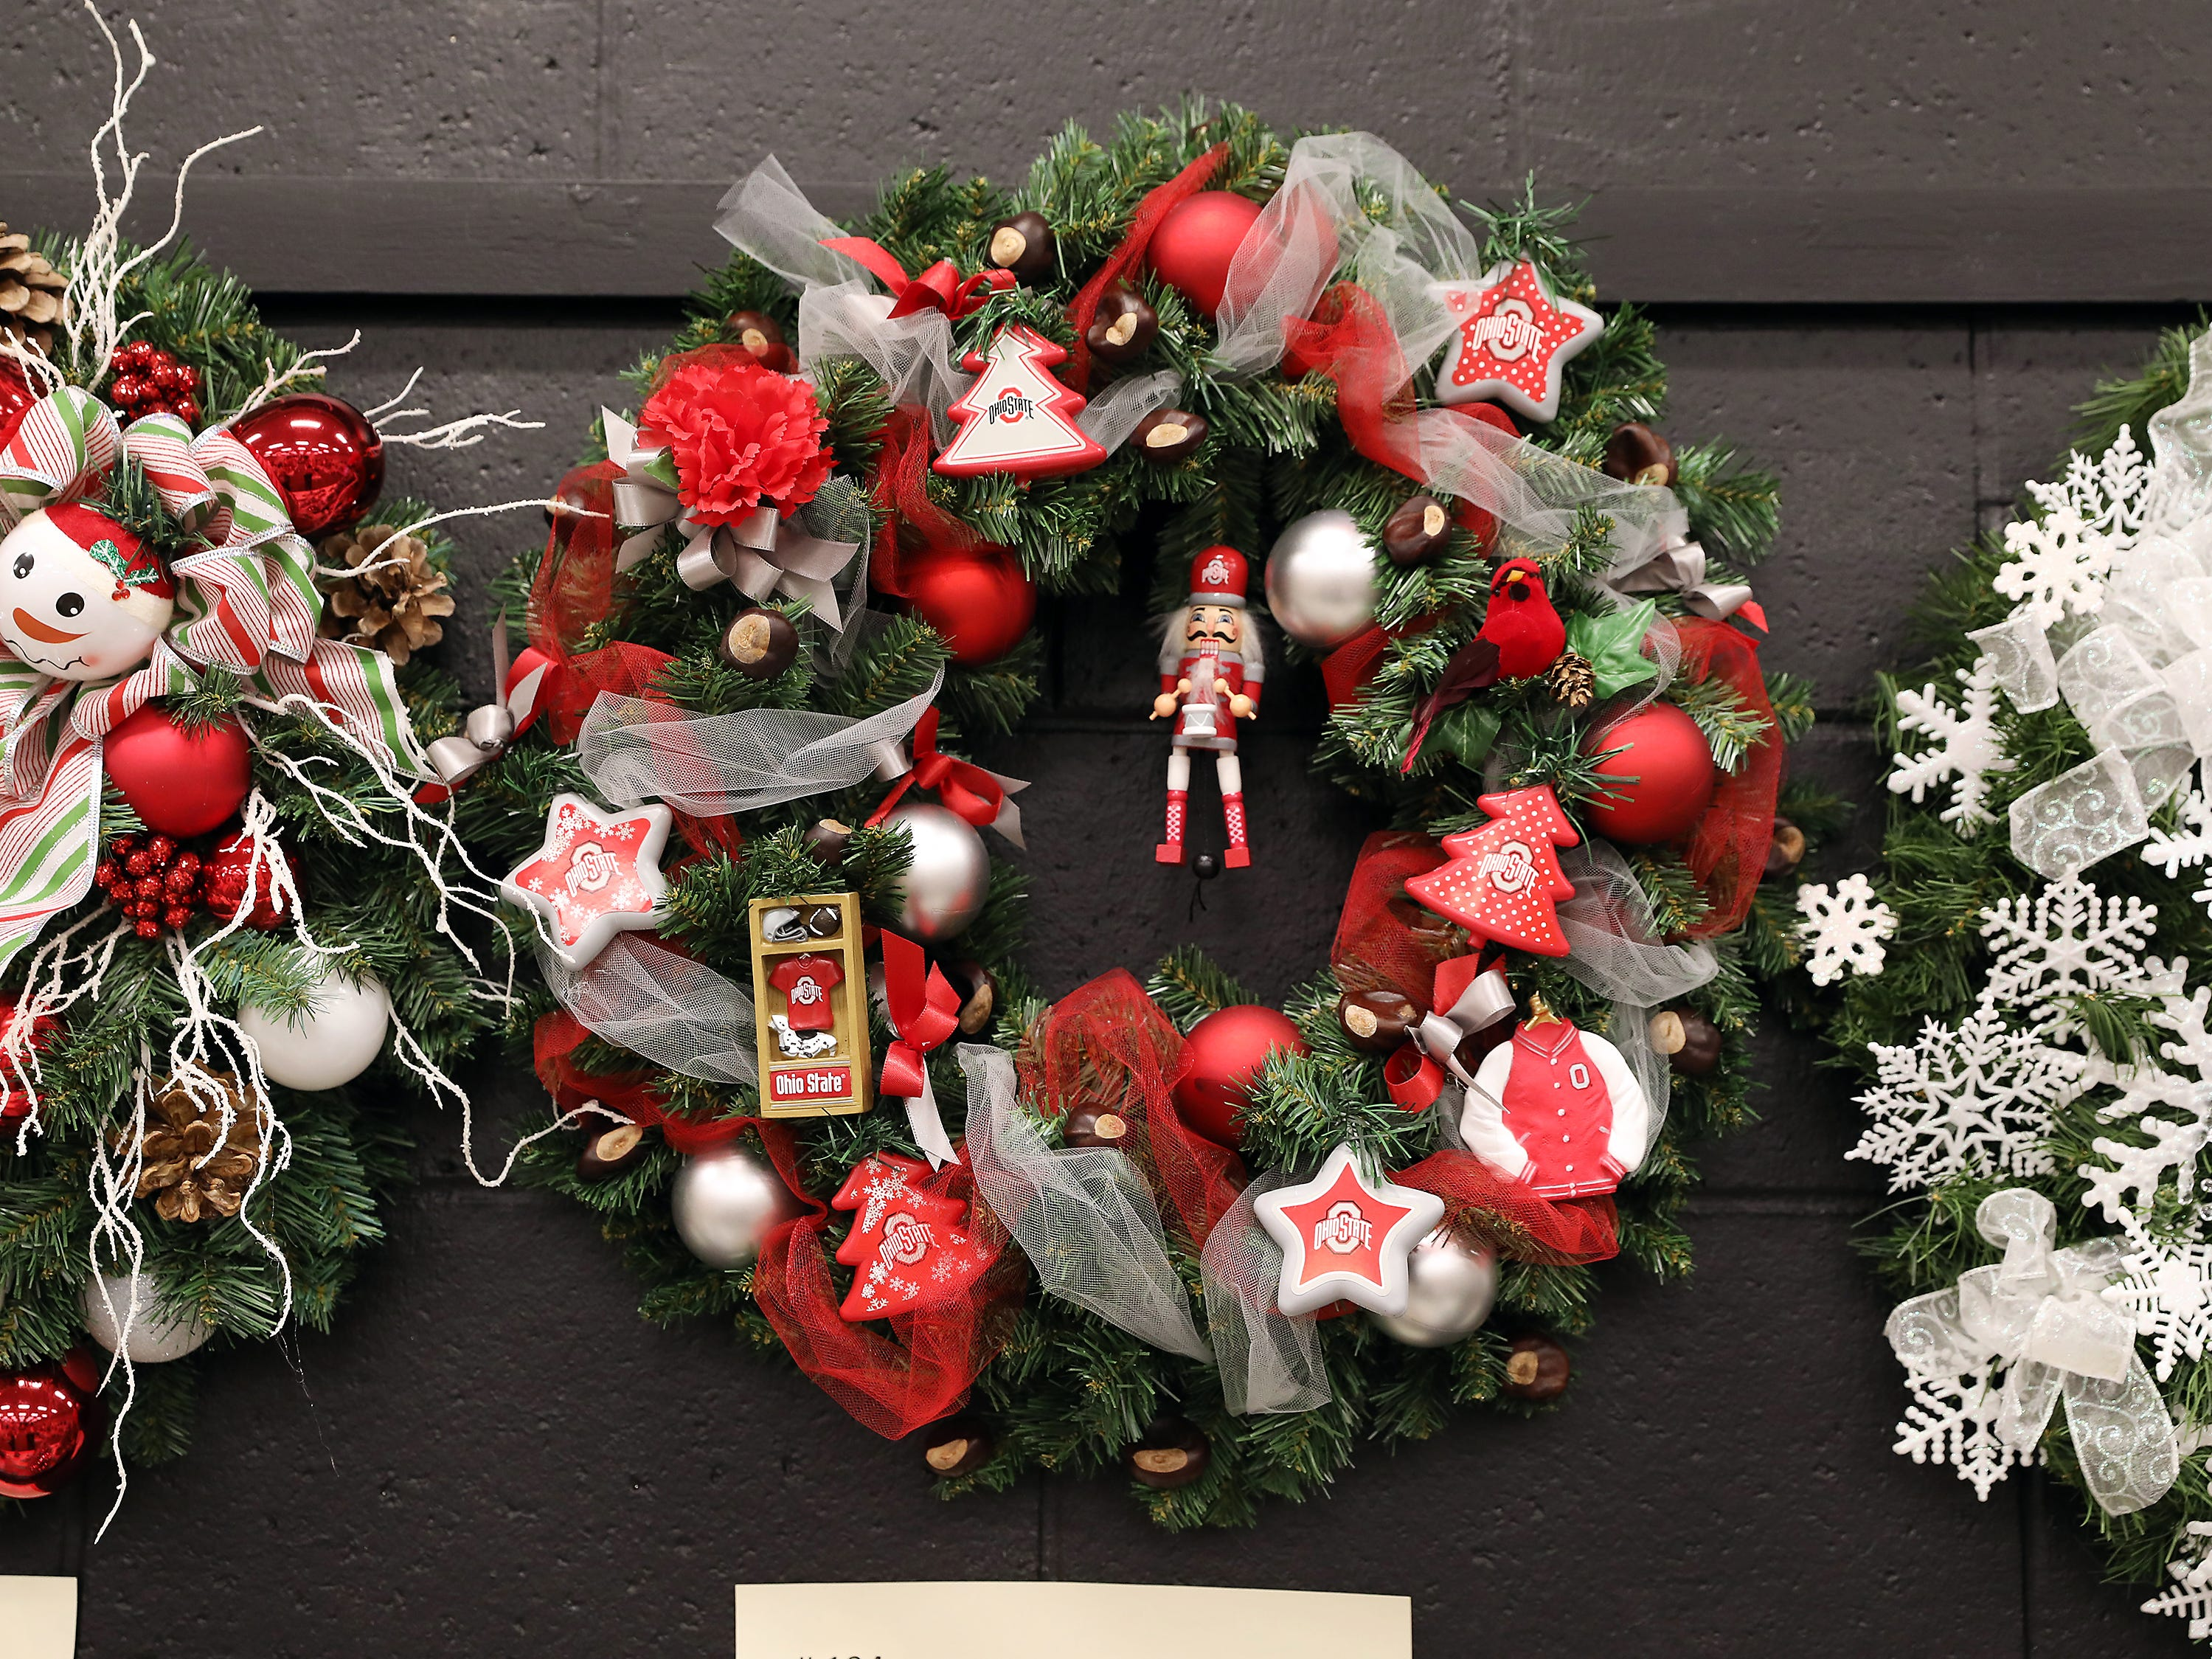 """1944:45 PMBryan Graham - Dutro FordWreathGo Bucks!24"""" green wreath decorated in full OSU, perfect for any Ohio State fan!4 tickets to Ohio State Men's Basketball, December 18, 2019.  OSU vs. Youngstown State.  Huntington Club level seating, parking pass included."""